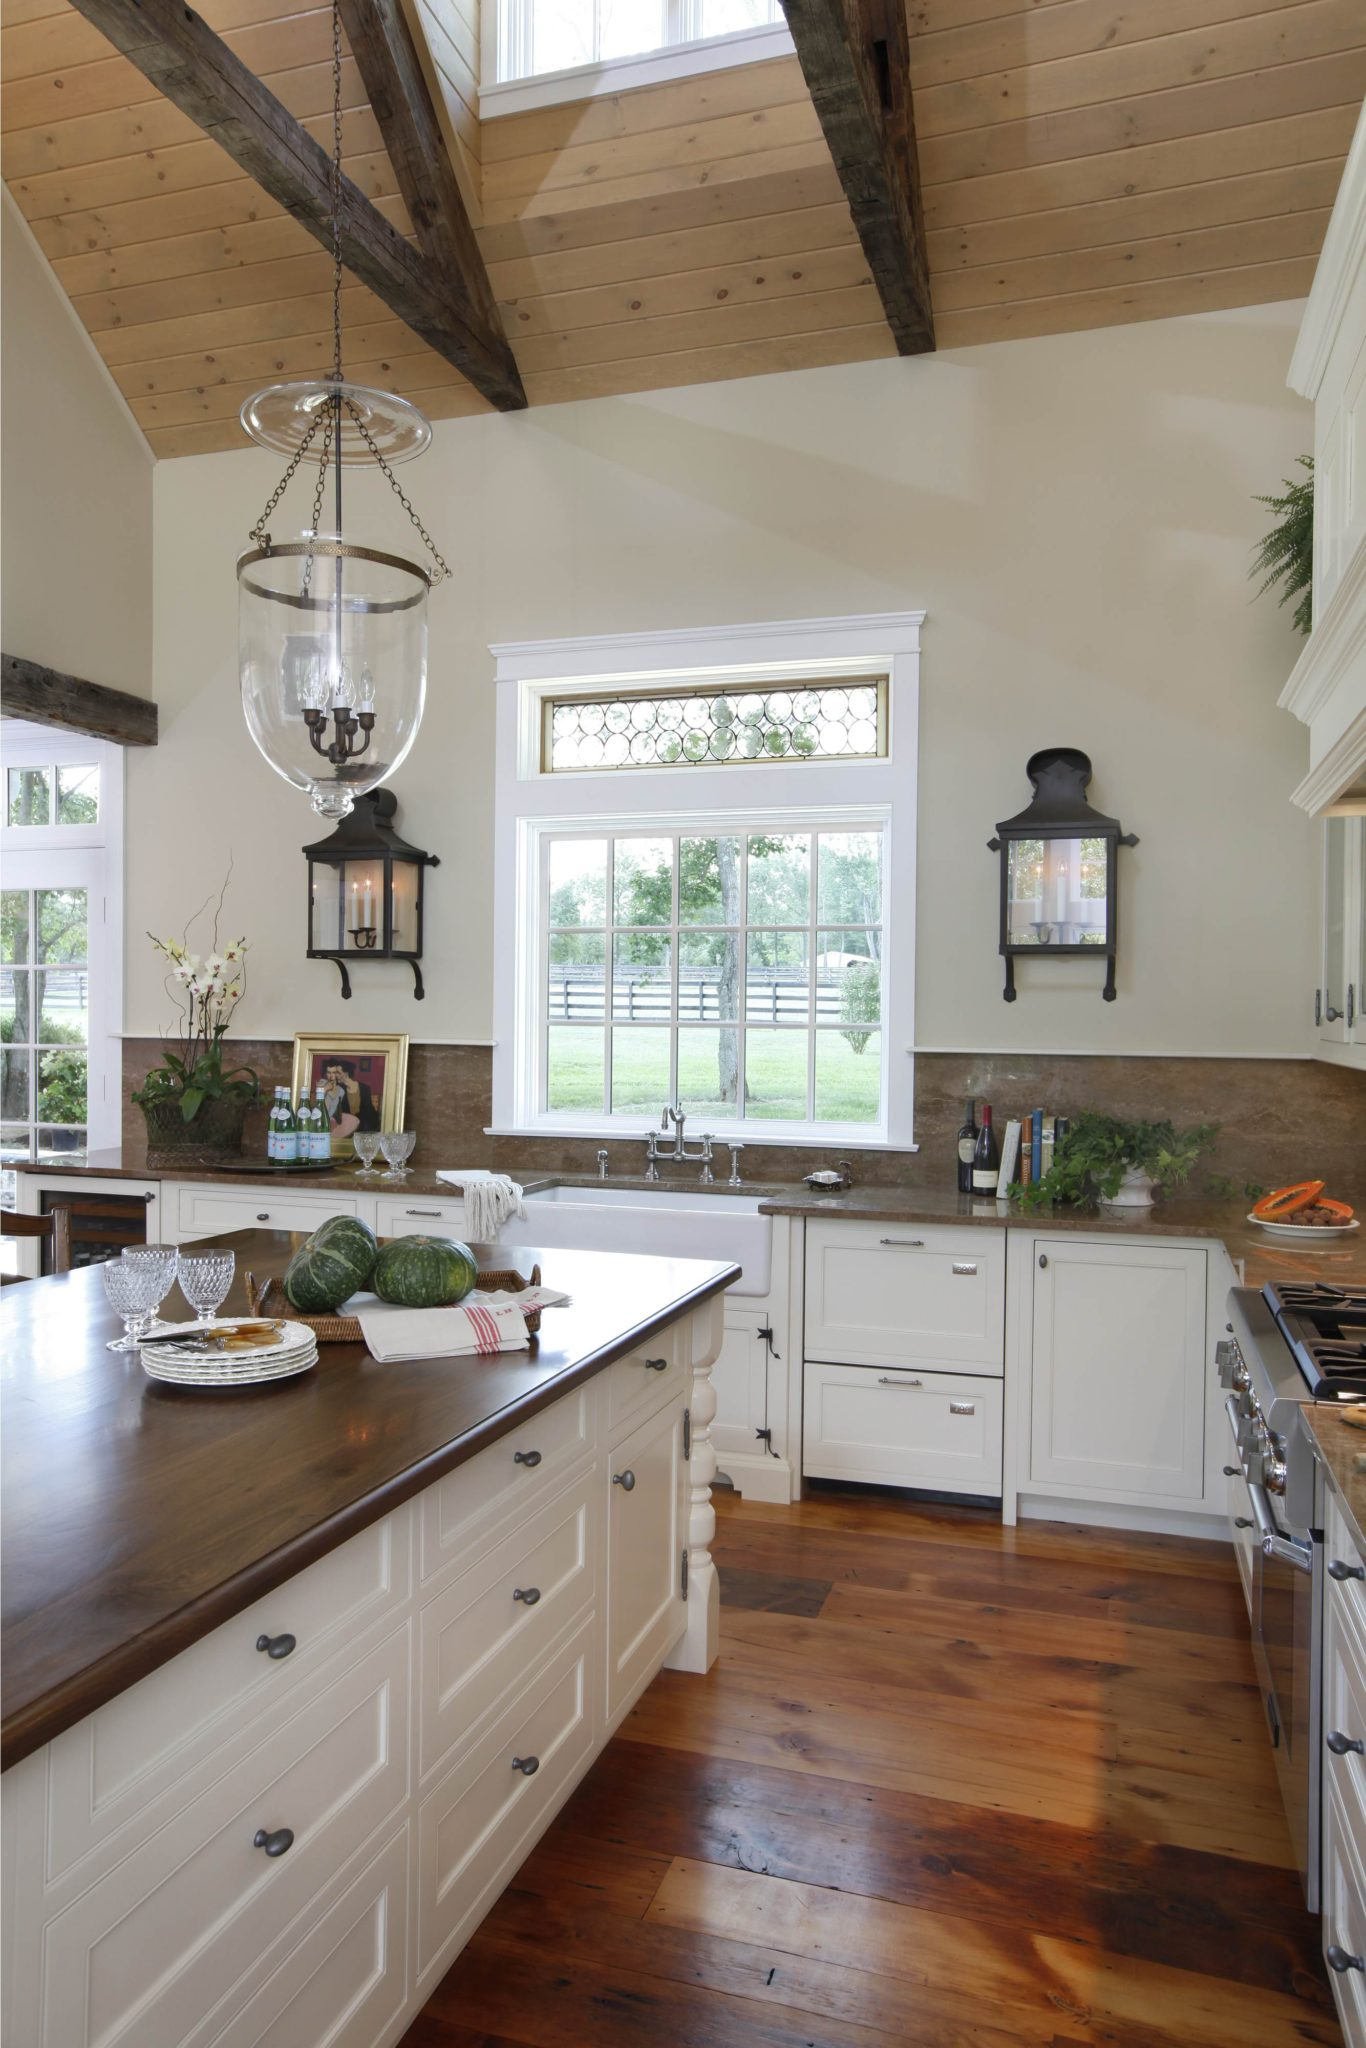 Trotter's Green kitchen with pine floor, beadboard ceiling and bridge faucet by Deborah Leamann Interior Design